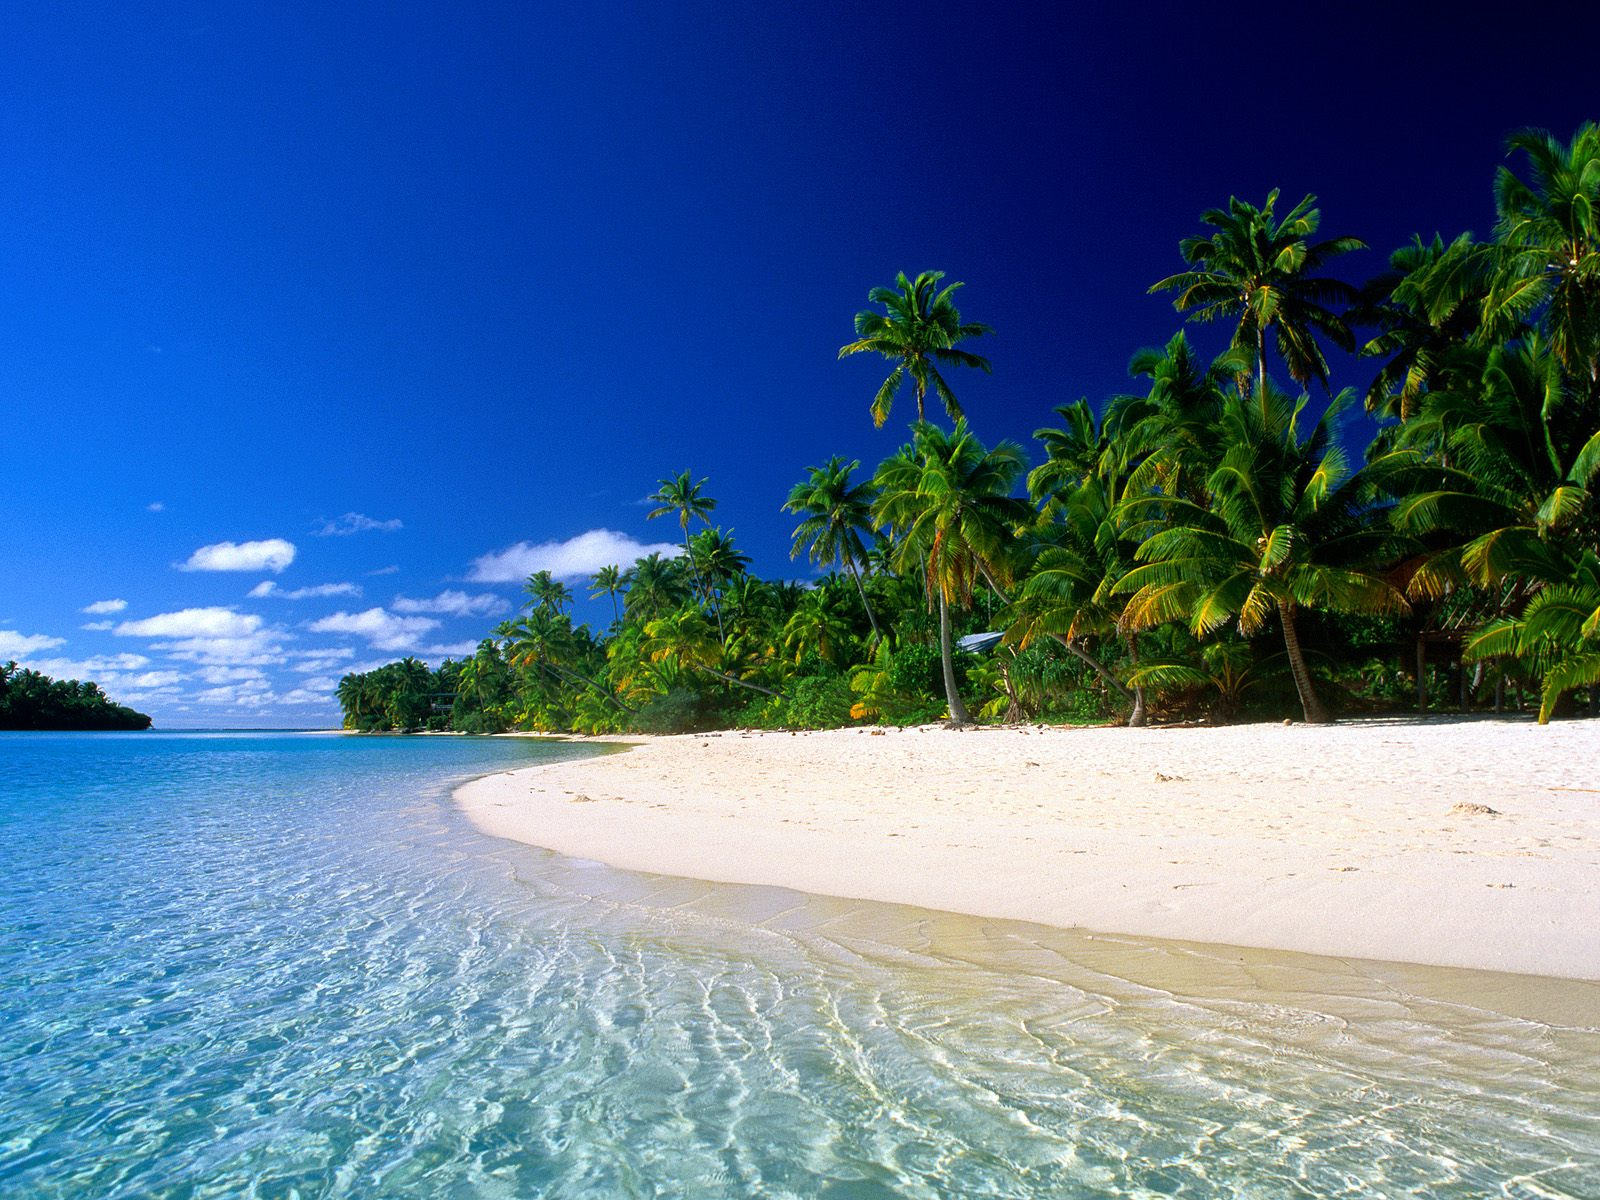 Island Wallpaper Pictures 1600x1200